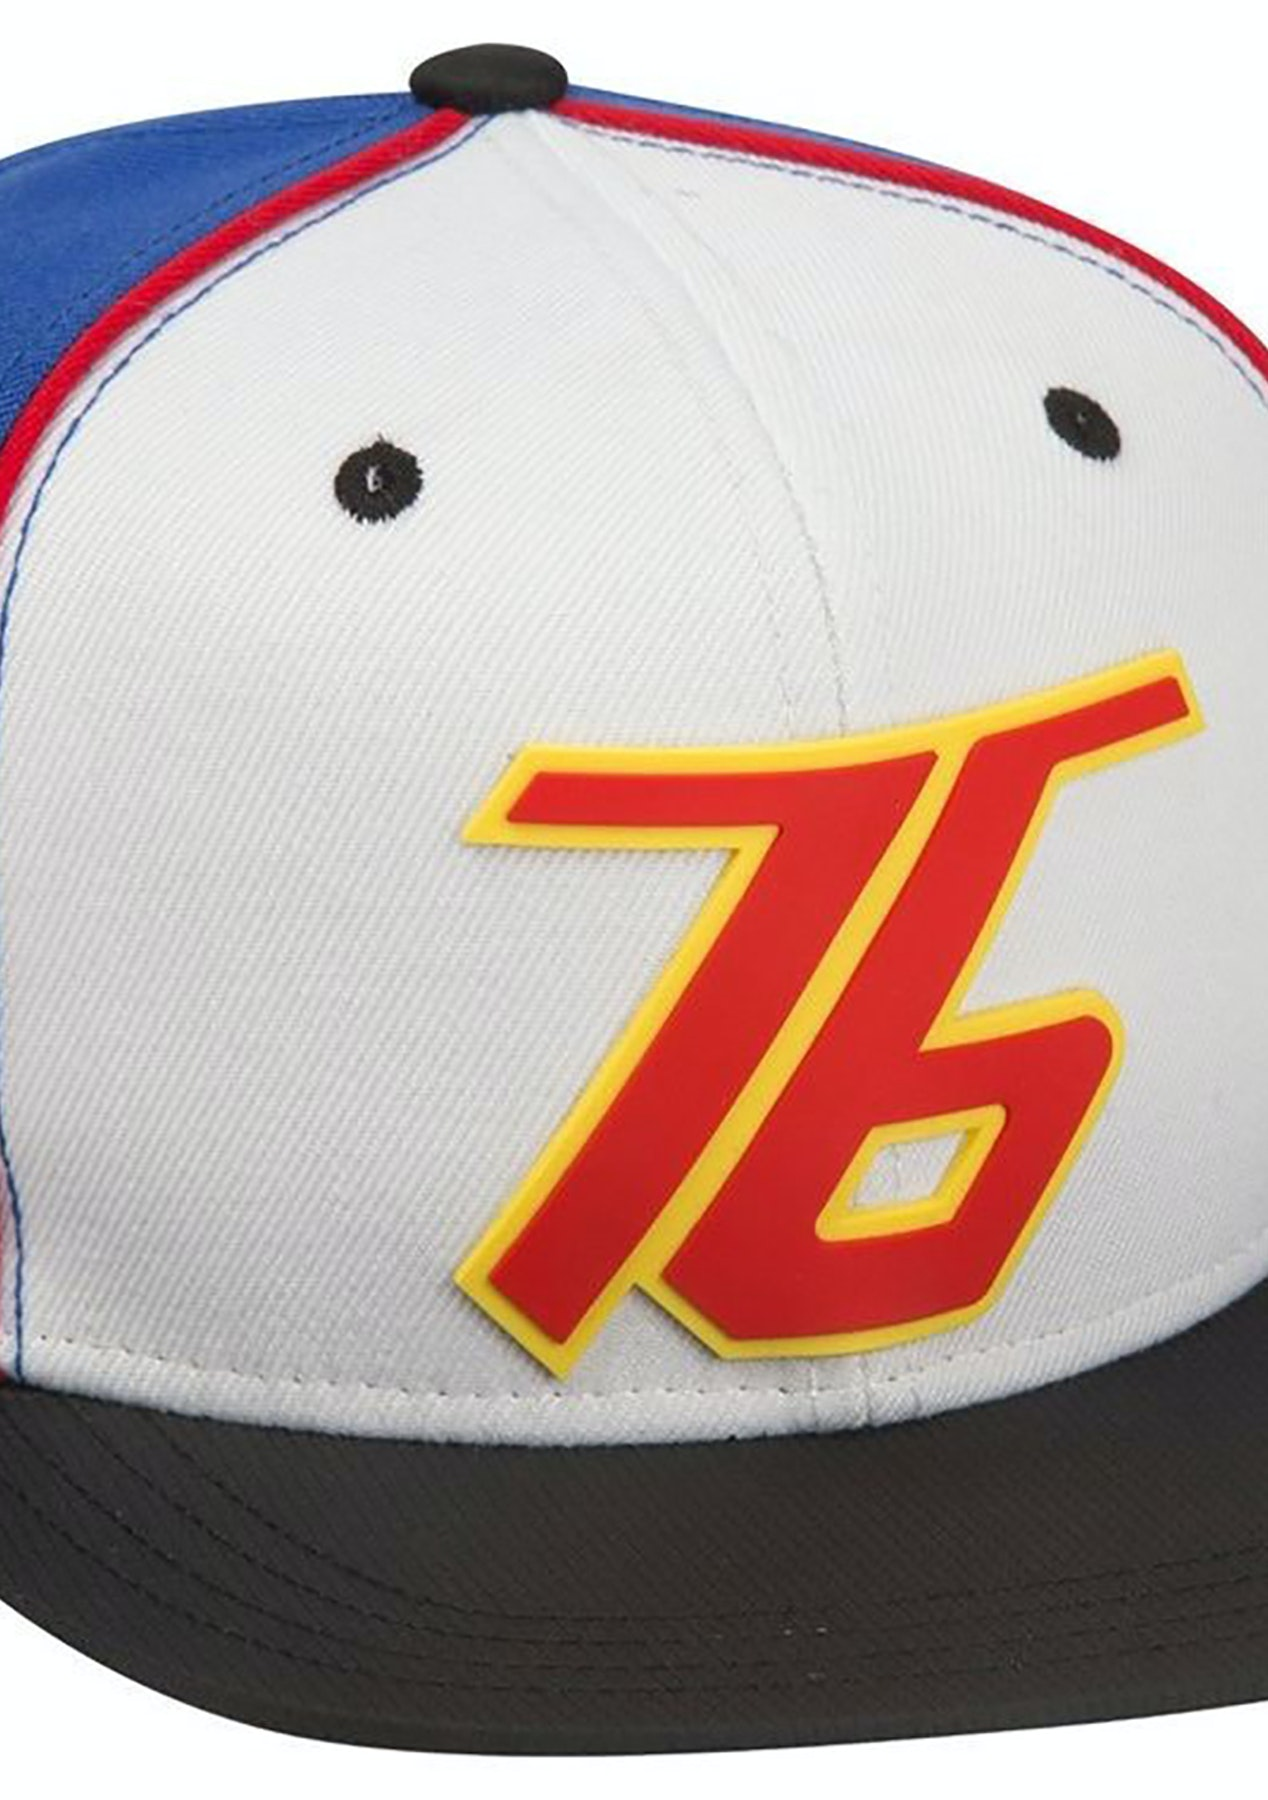 9cd9238e6 Overwatch Soldier 76 Snap Back Hat One Size White Blue - The Big ...